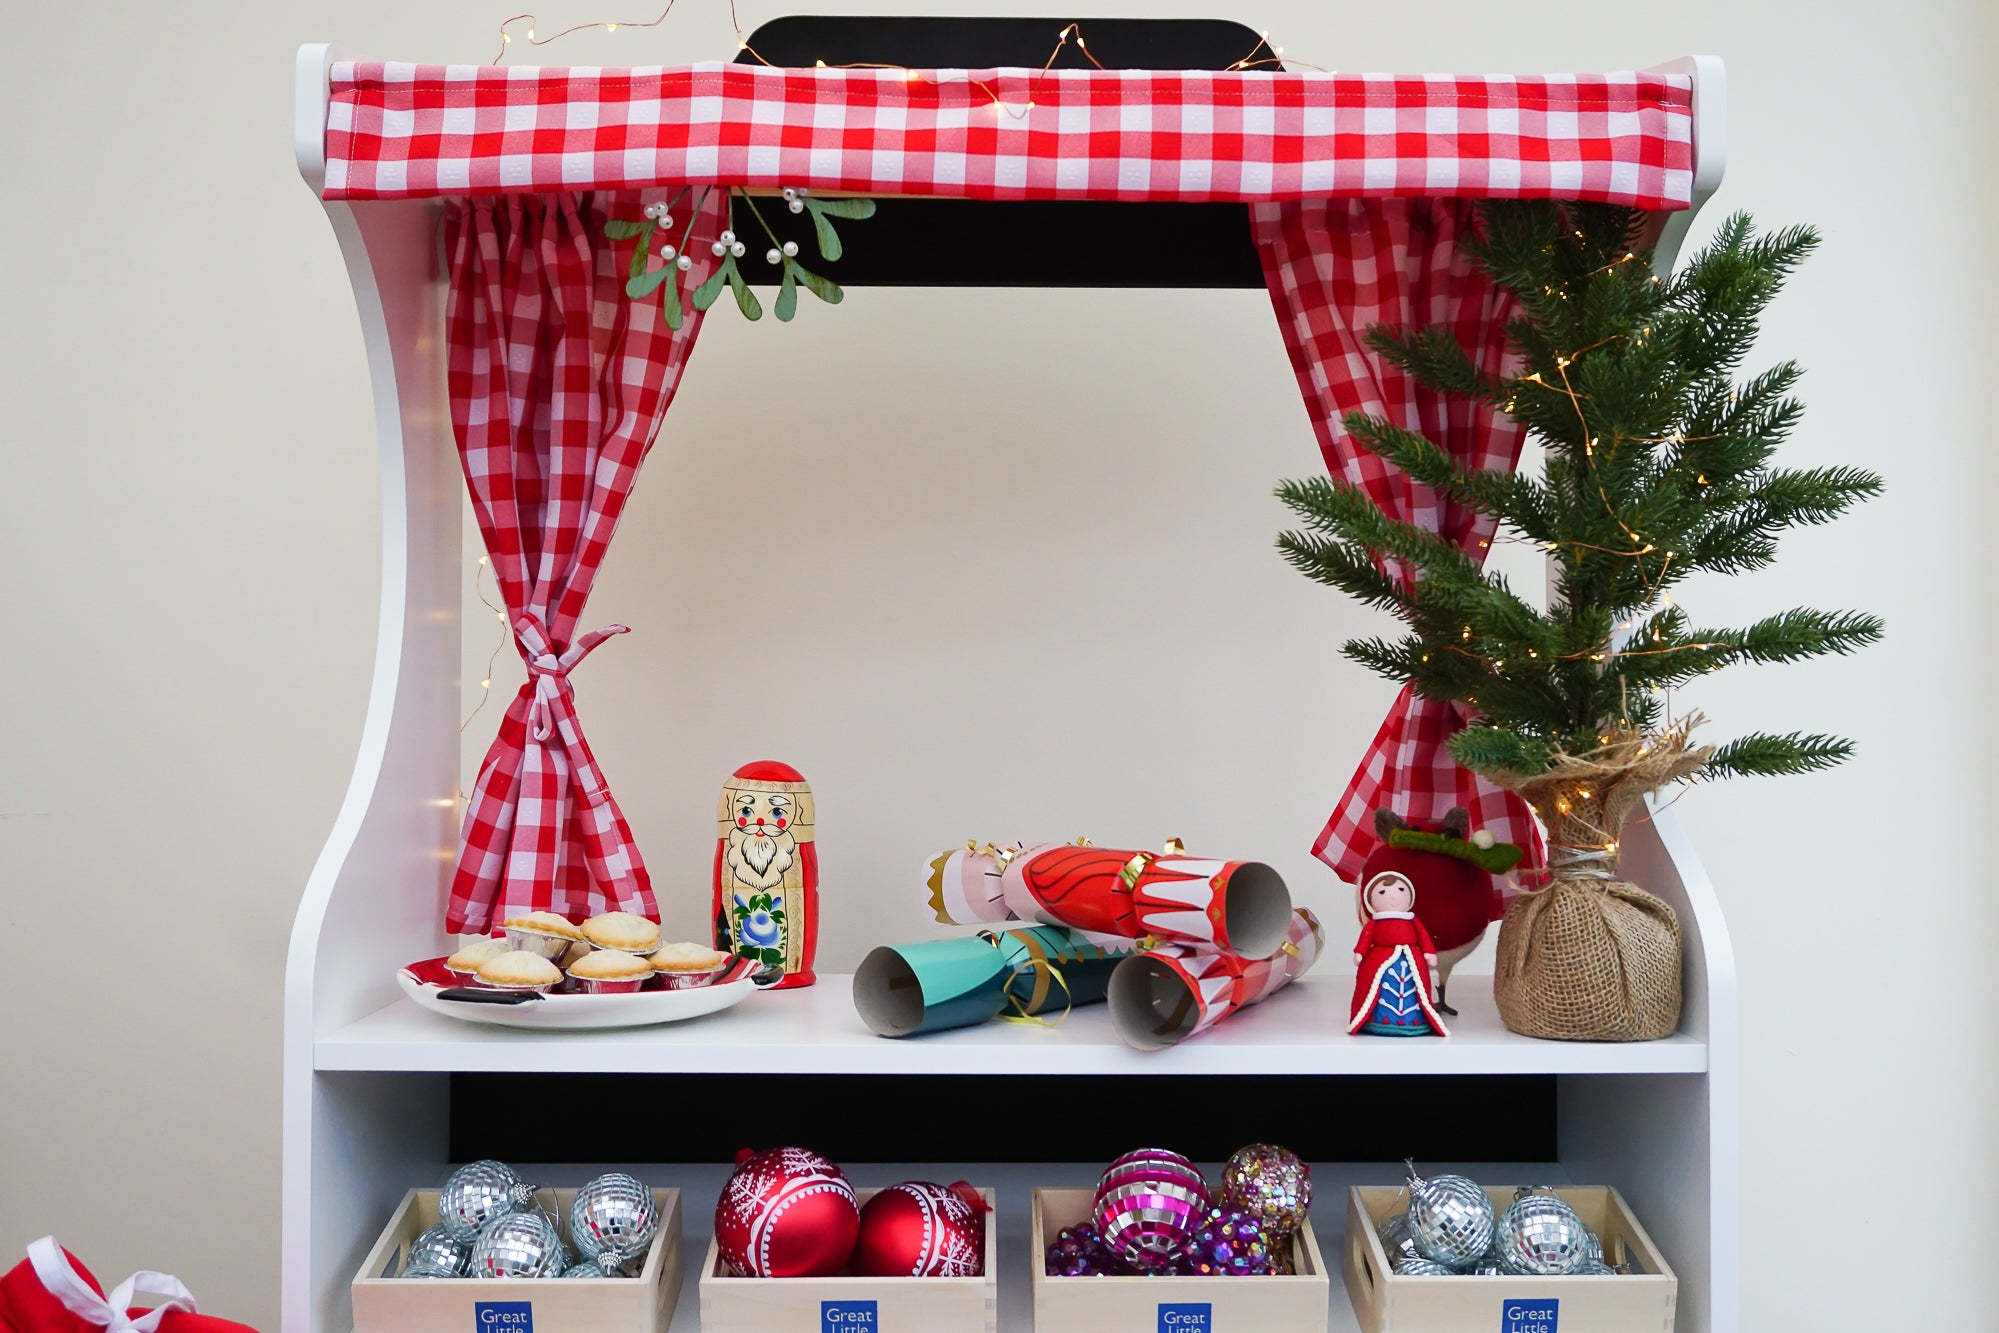 Classic Toys: The Sixpence Play Shop Gets A Christmas Makeover